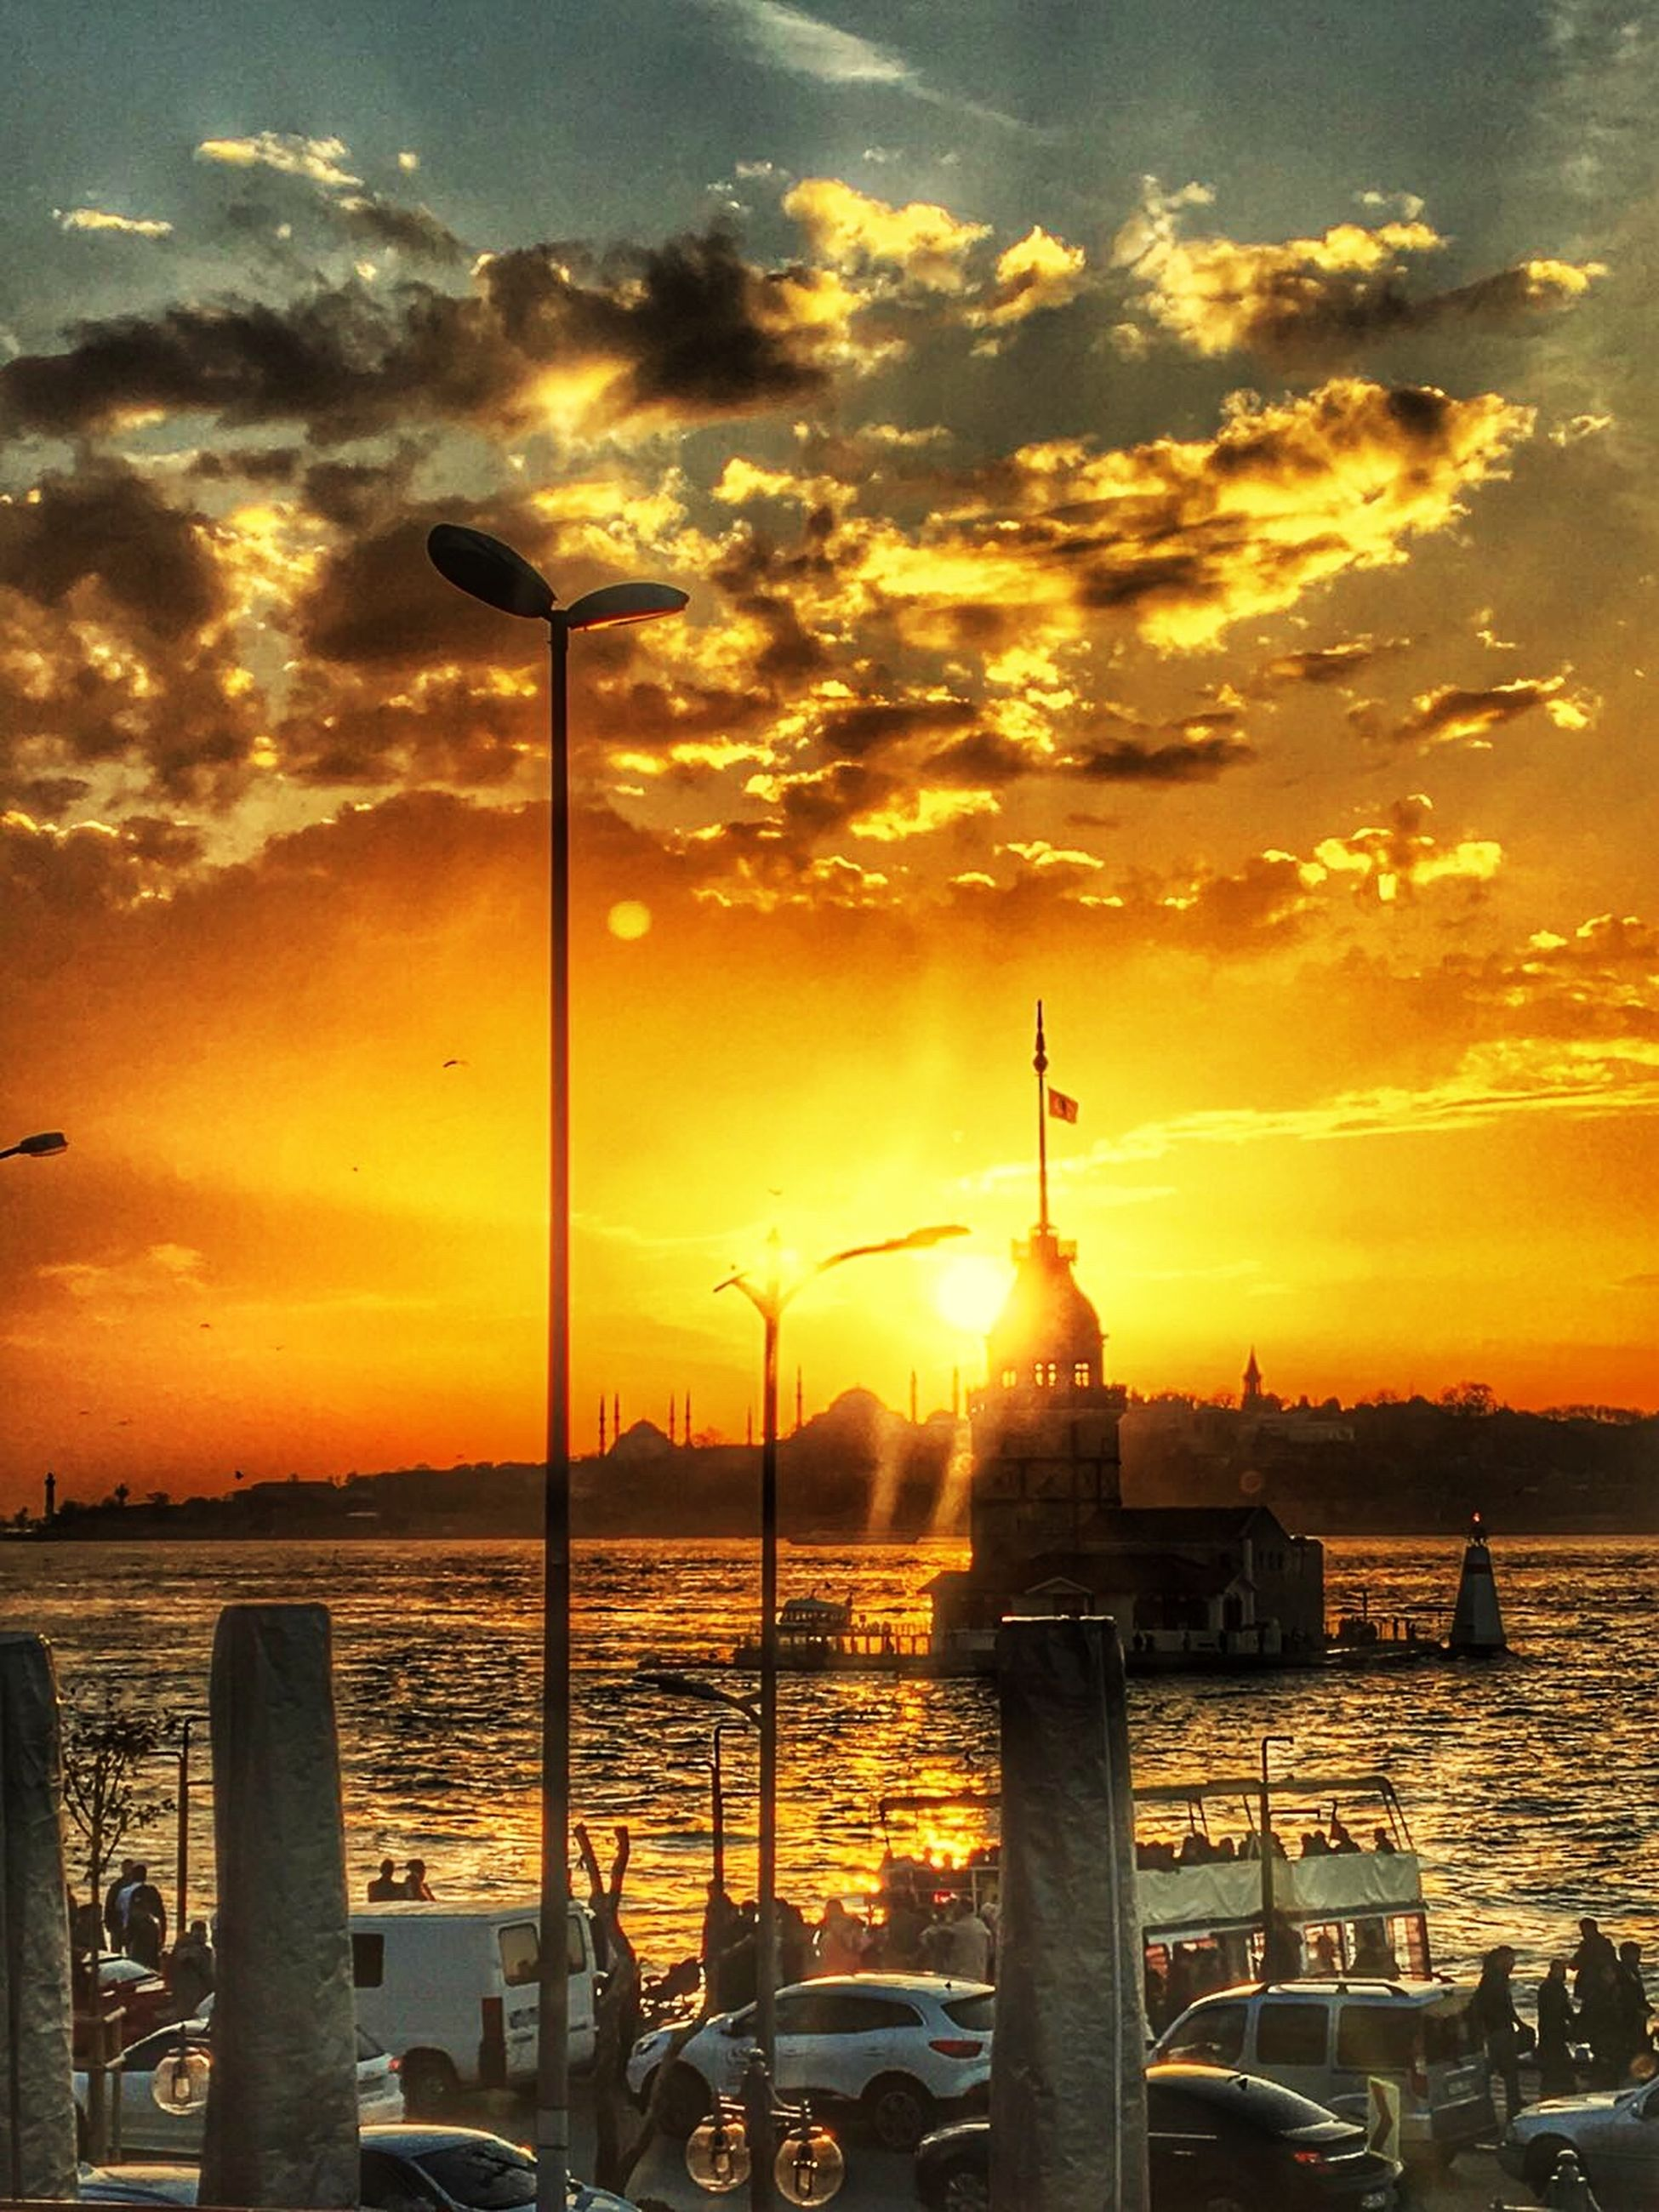 Kızkulesi Sunset Istanbuldayasam Istanbulda1yer Istanbul Turkey Sunset Sky Cloud - Sky Water Orange Color Nature Sea Built Structure Silhouette Scenics Beauty In Nature Outdoors Sun No People Building Exterior Architecture Travel Destinations Day Food Stories